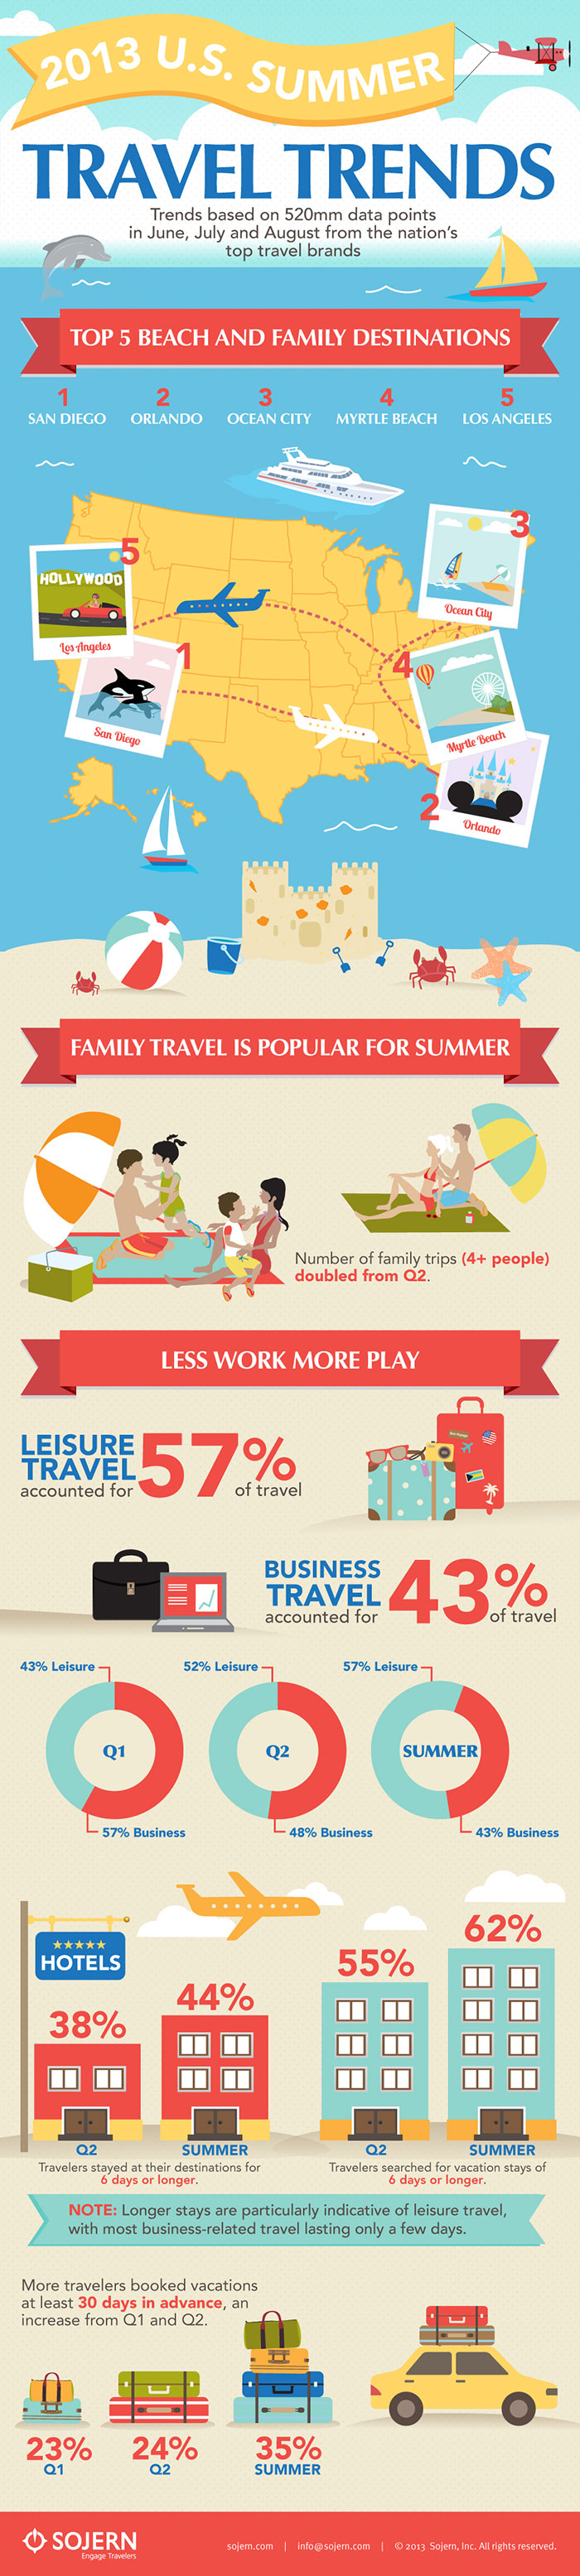 2013 Summer Travel Trends